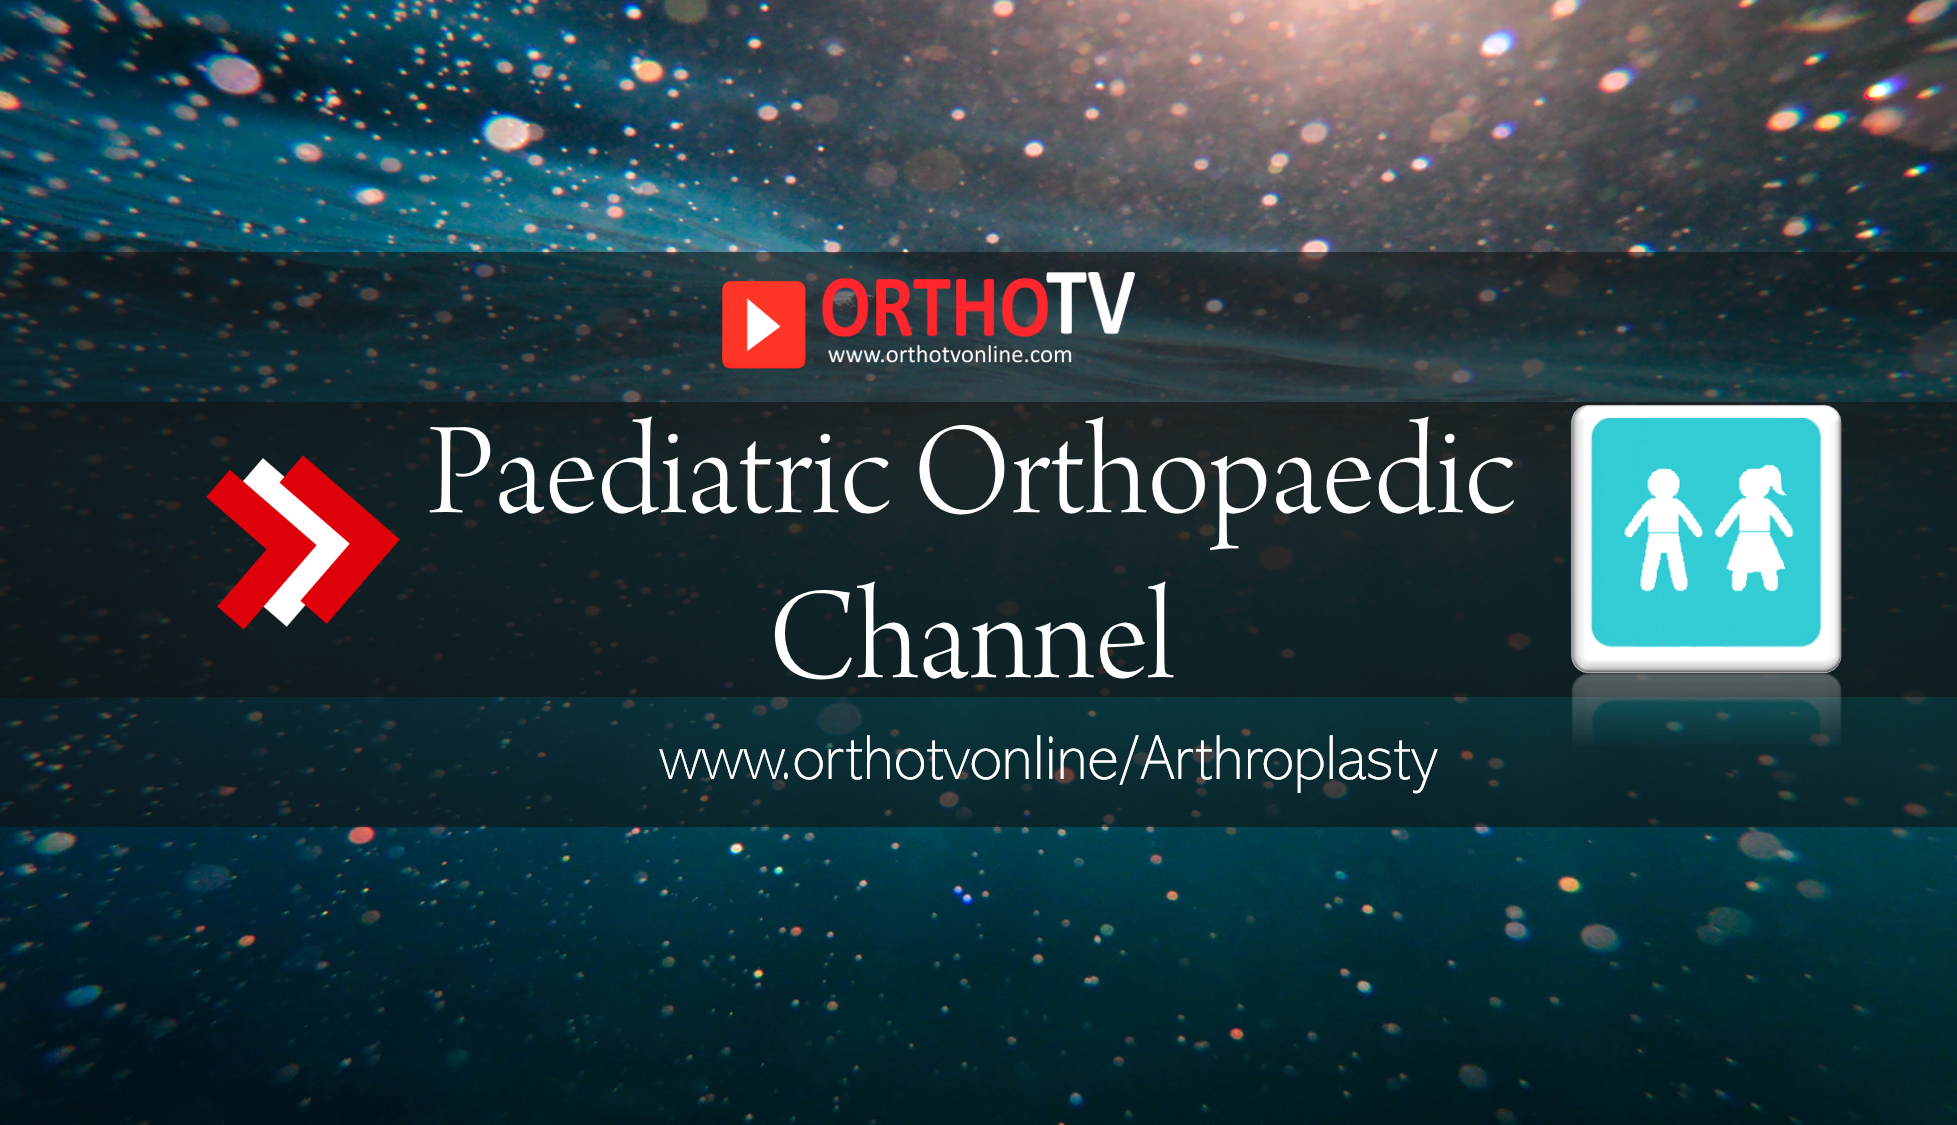 - Peds ortho Orthotv - Paediatric Orthopaedic Videos